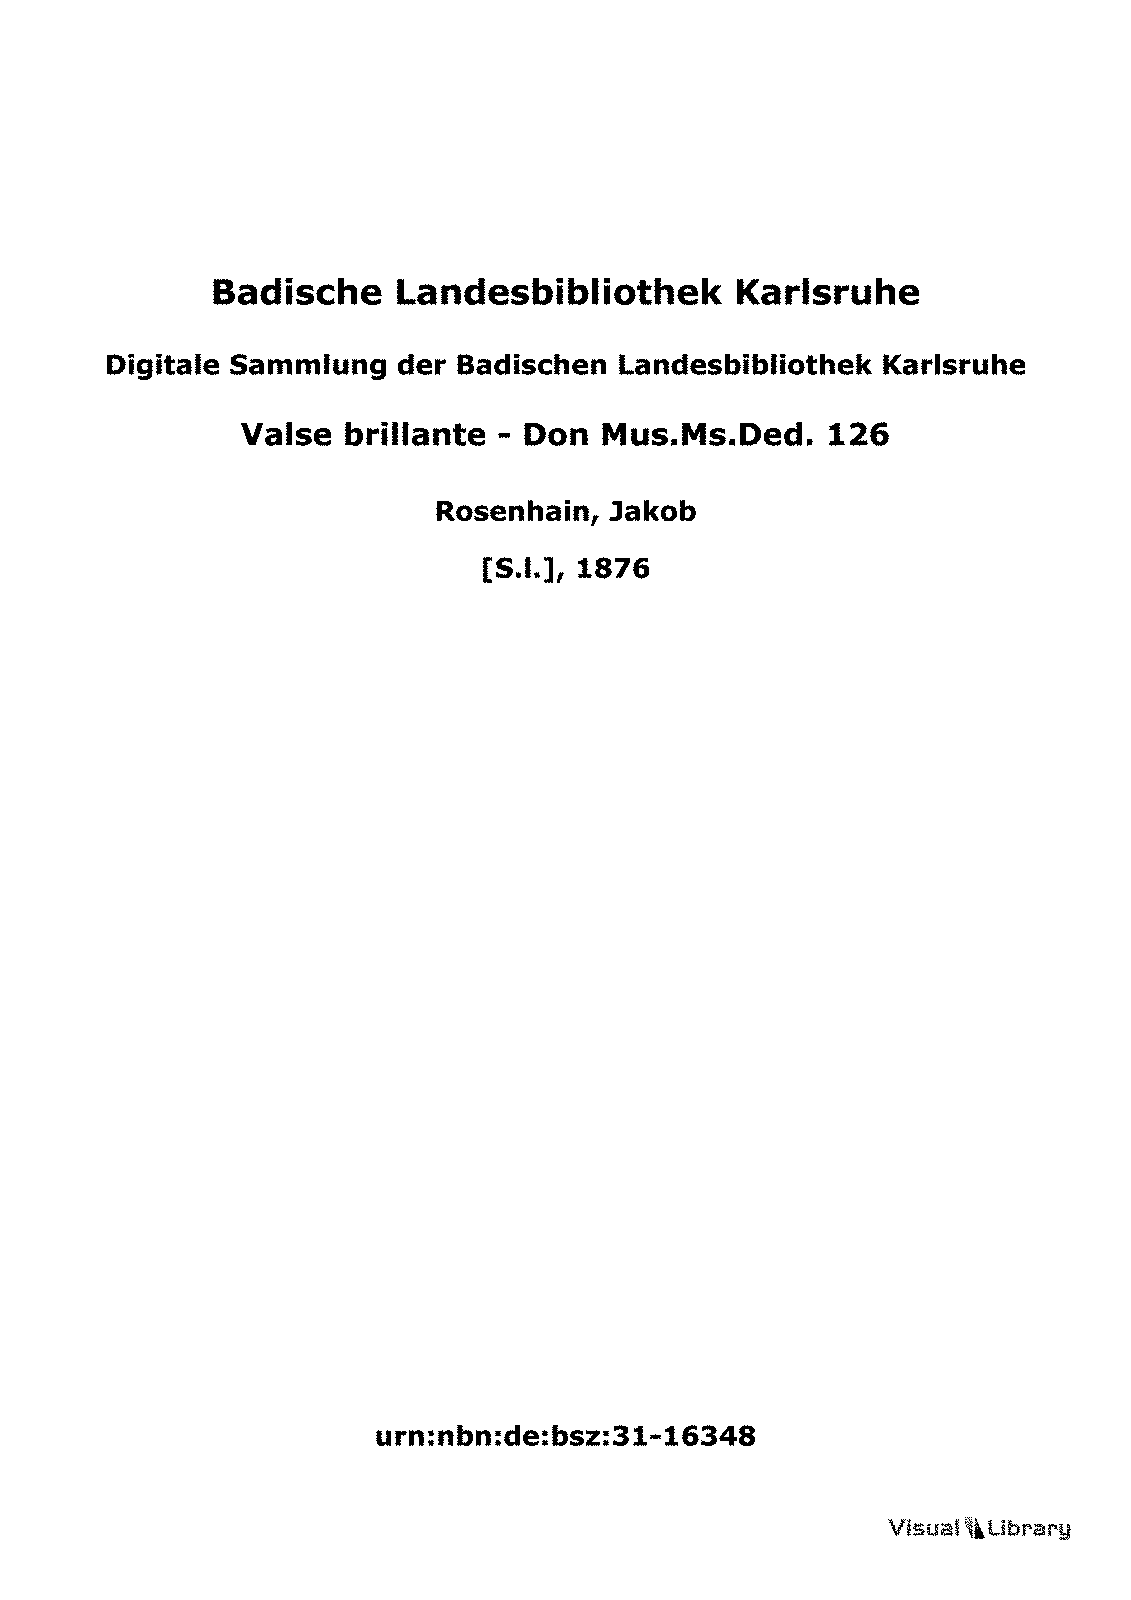 PMLP217747-Valse brillante - Don MusMsDed 126.pdf